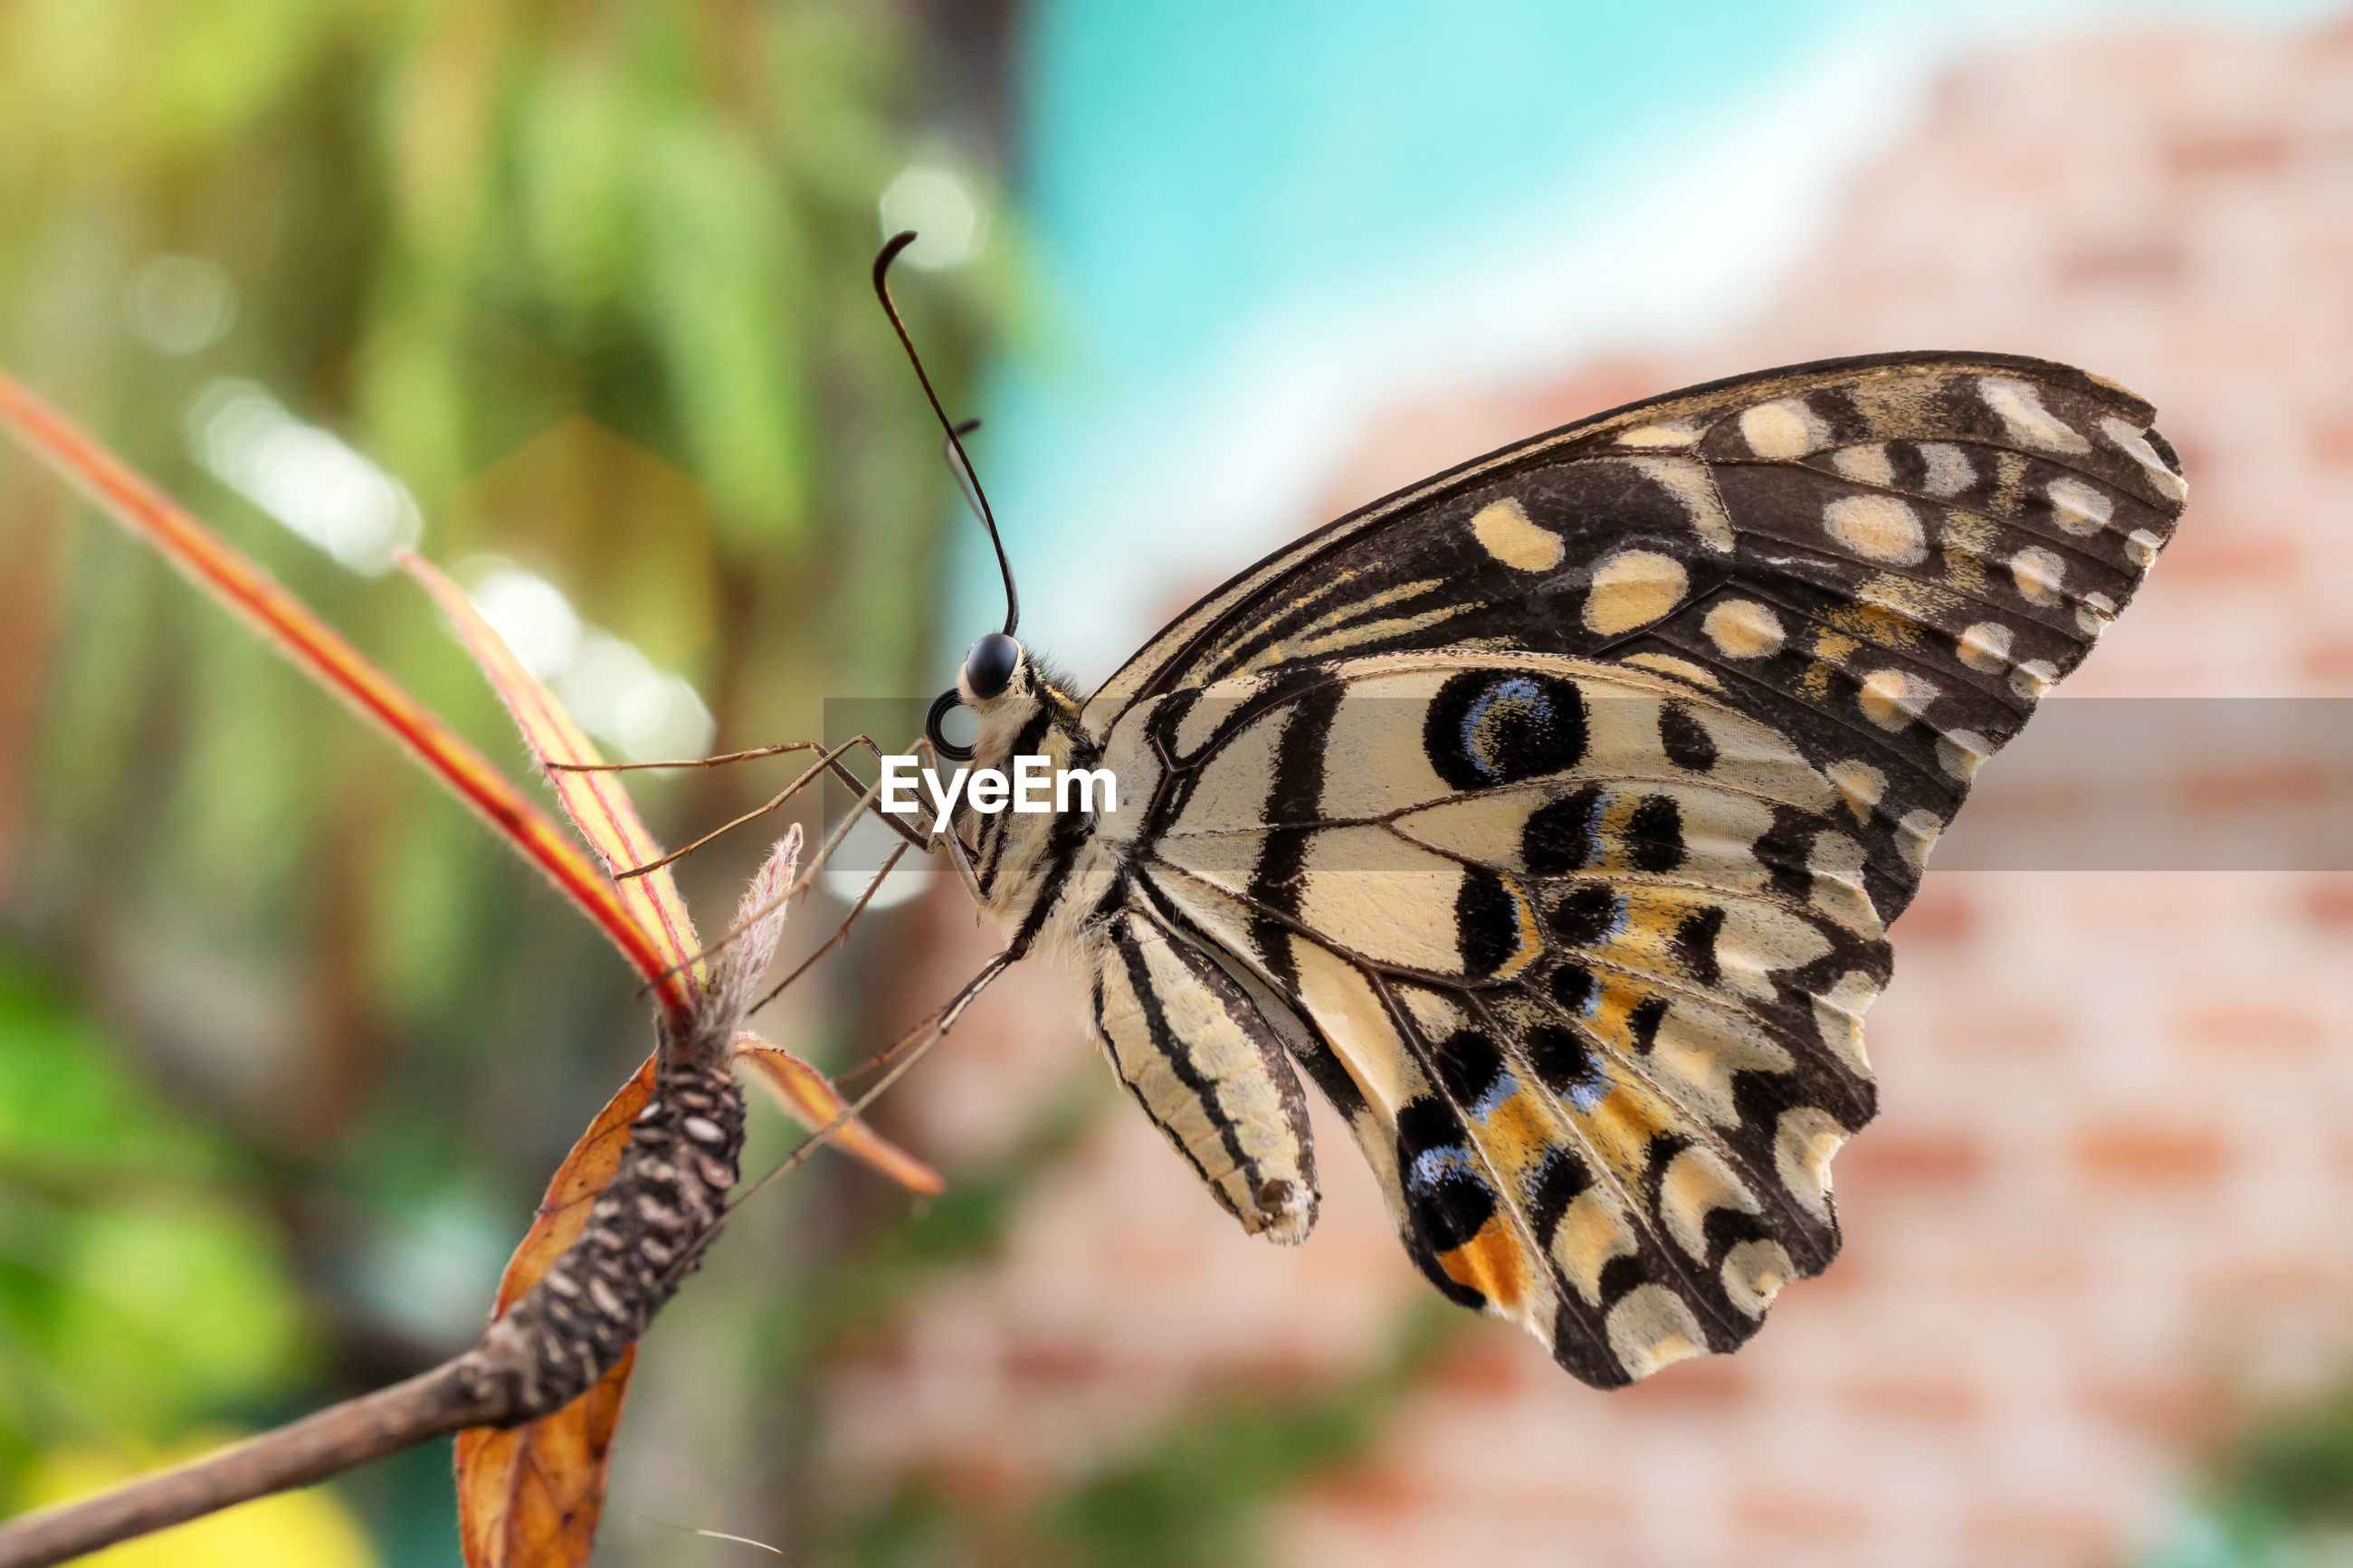 CLOSE-UP OF BUTTERFLY POLLINATING